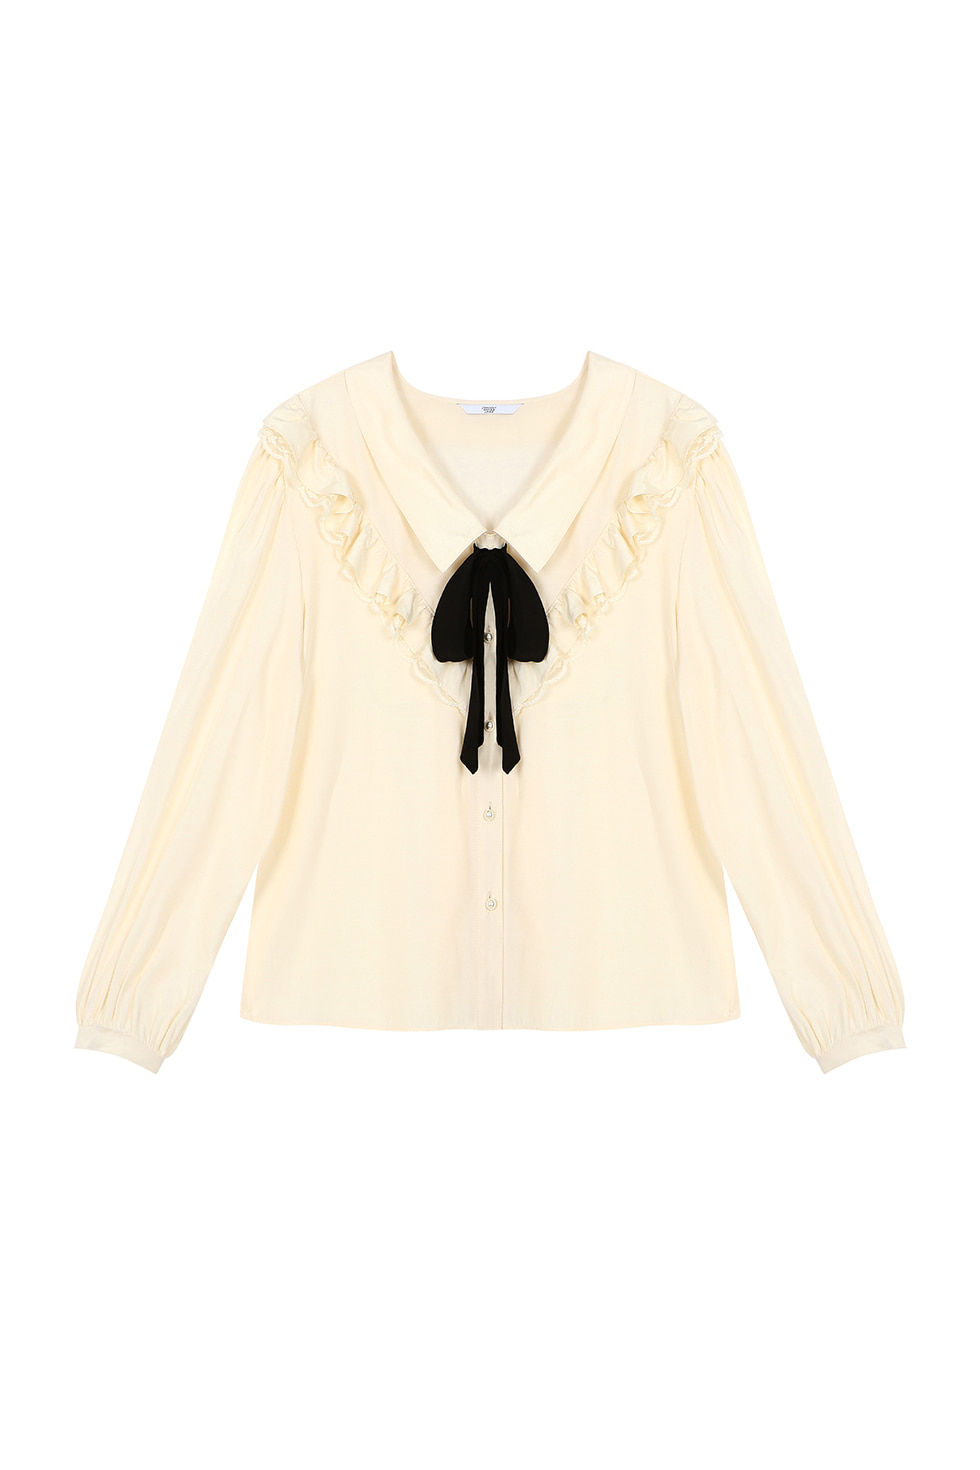 RIBBON TIE BLOUSE - IVORY